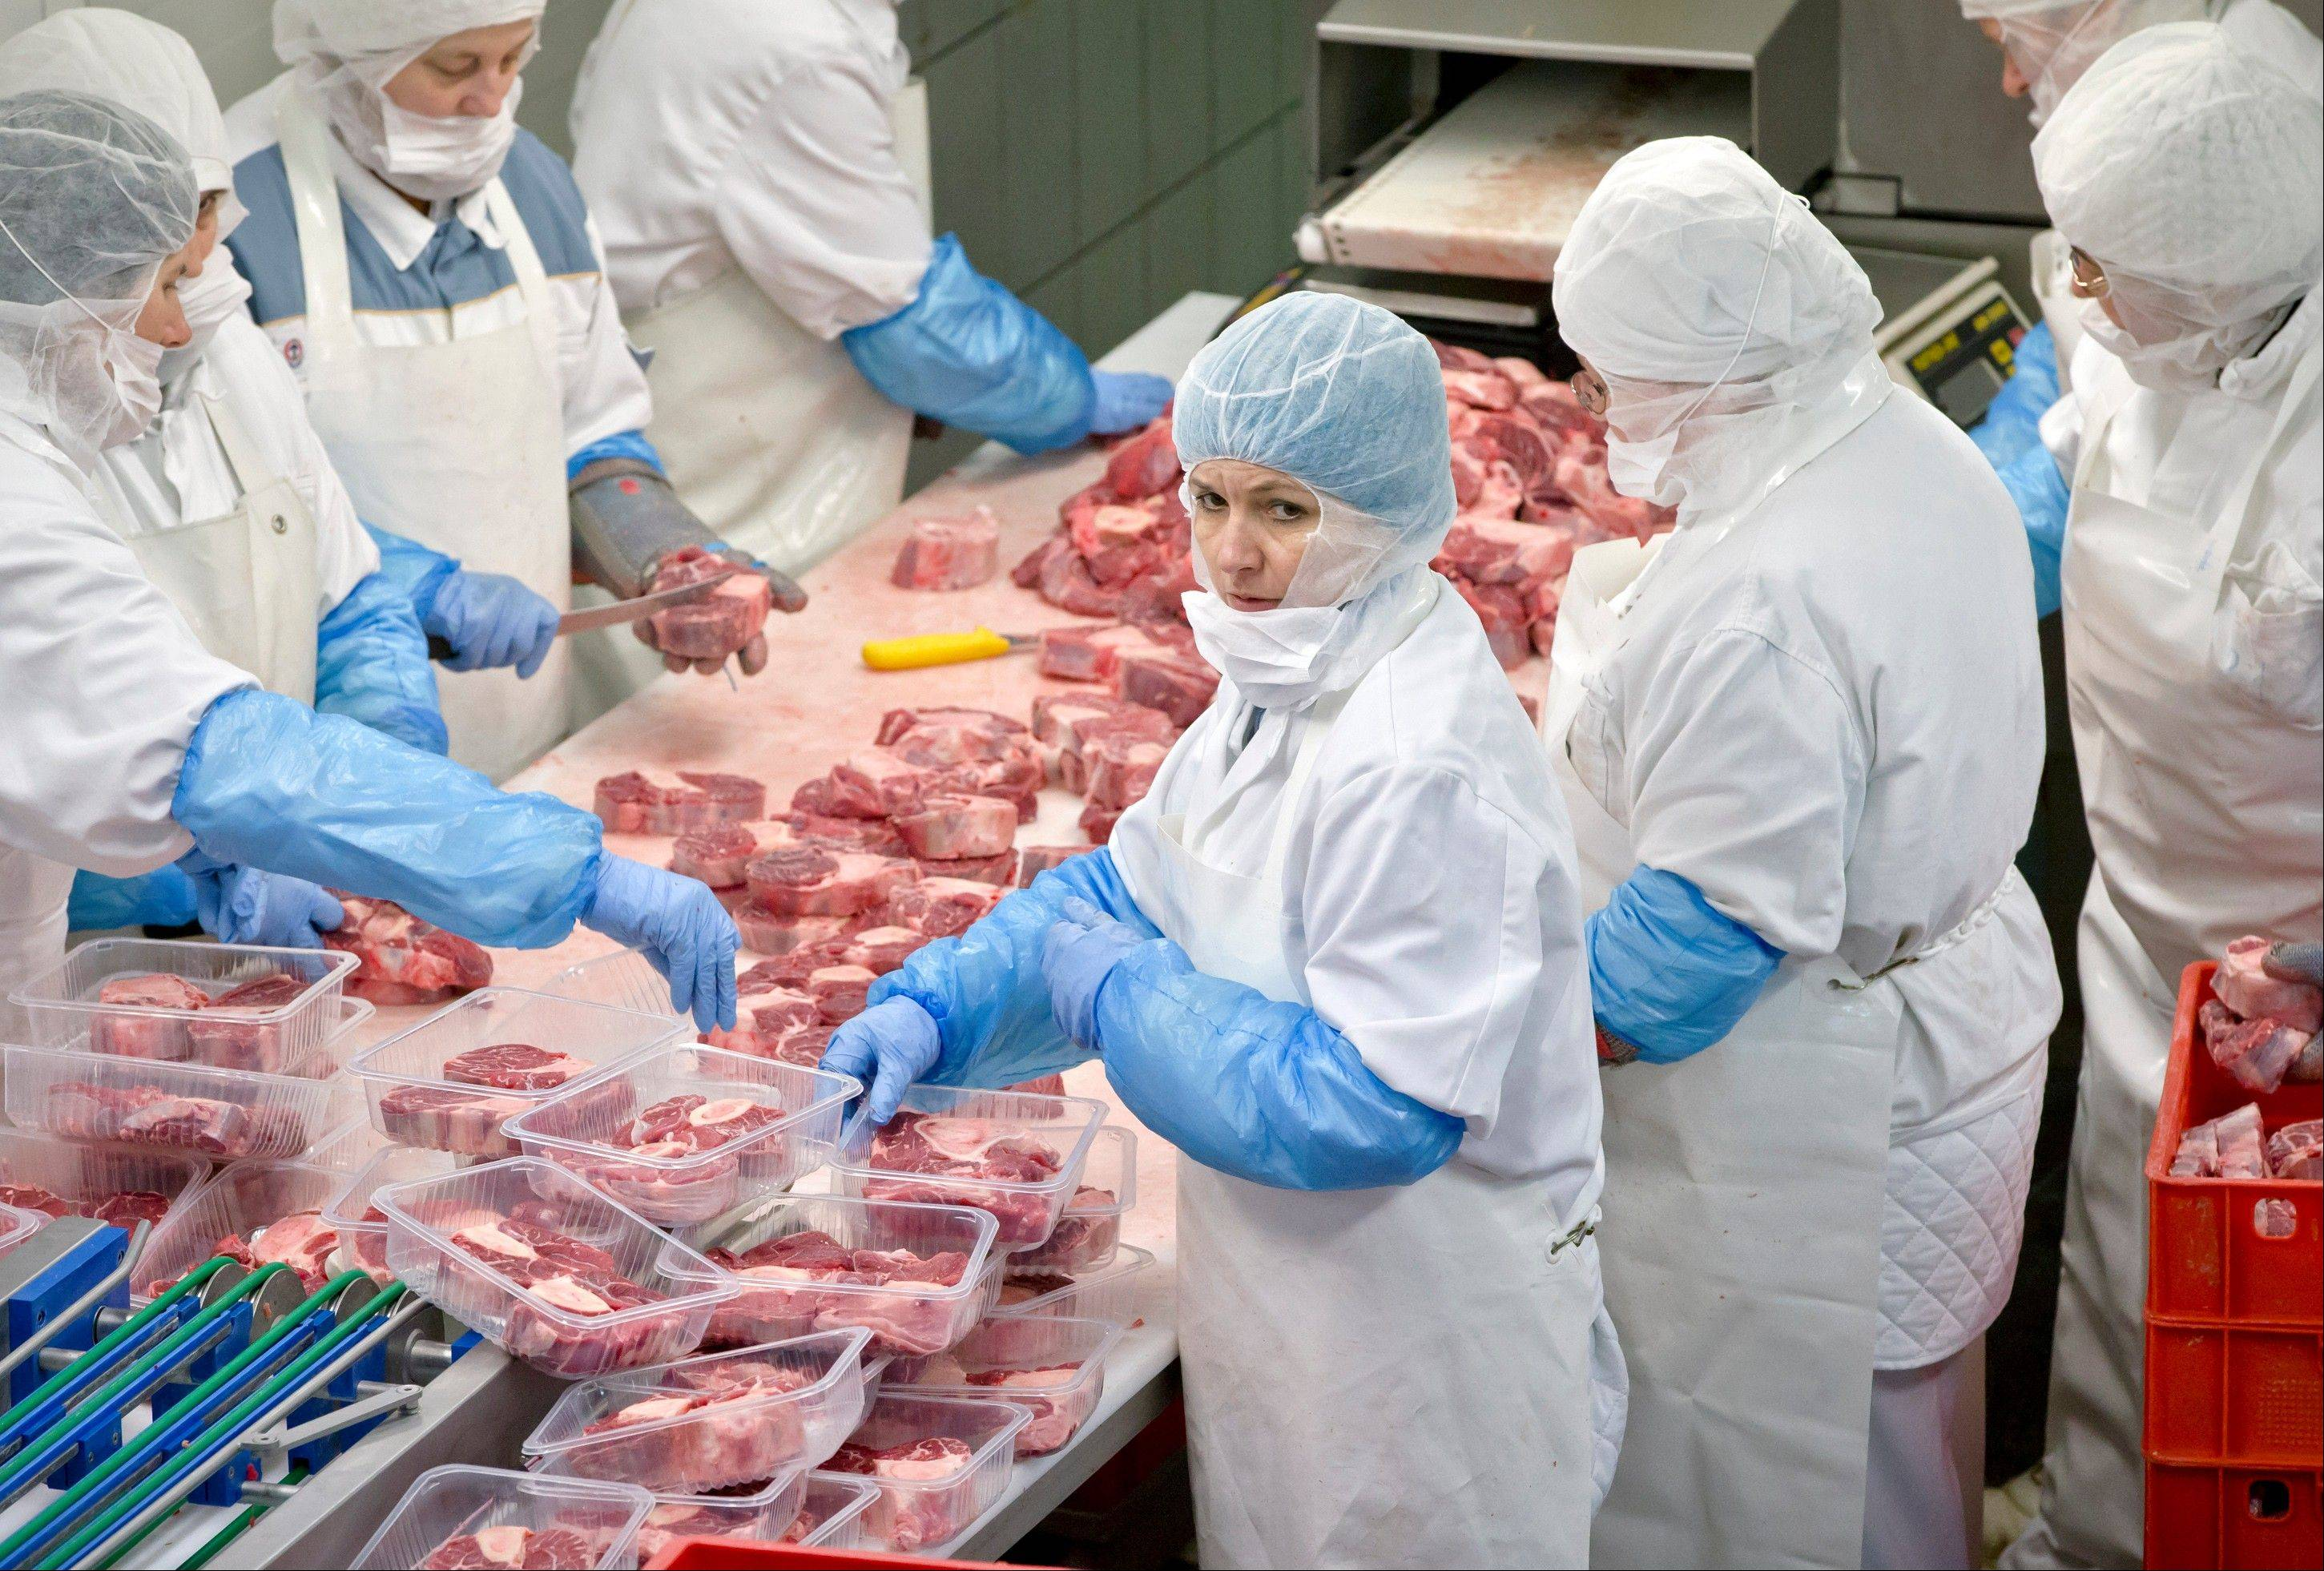 Pan-European police agency Europol is coordinating a continentwide fraud investigation amid allegations of an international criminal conspiracy to substitute horse for more expensive beef. The scandal has uncovered the labyrinthine workings of the global food industry, where meat from a Romanian slaughterhouse can end up in British lasagna by way of companies in Luxembourg and France.